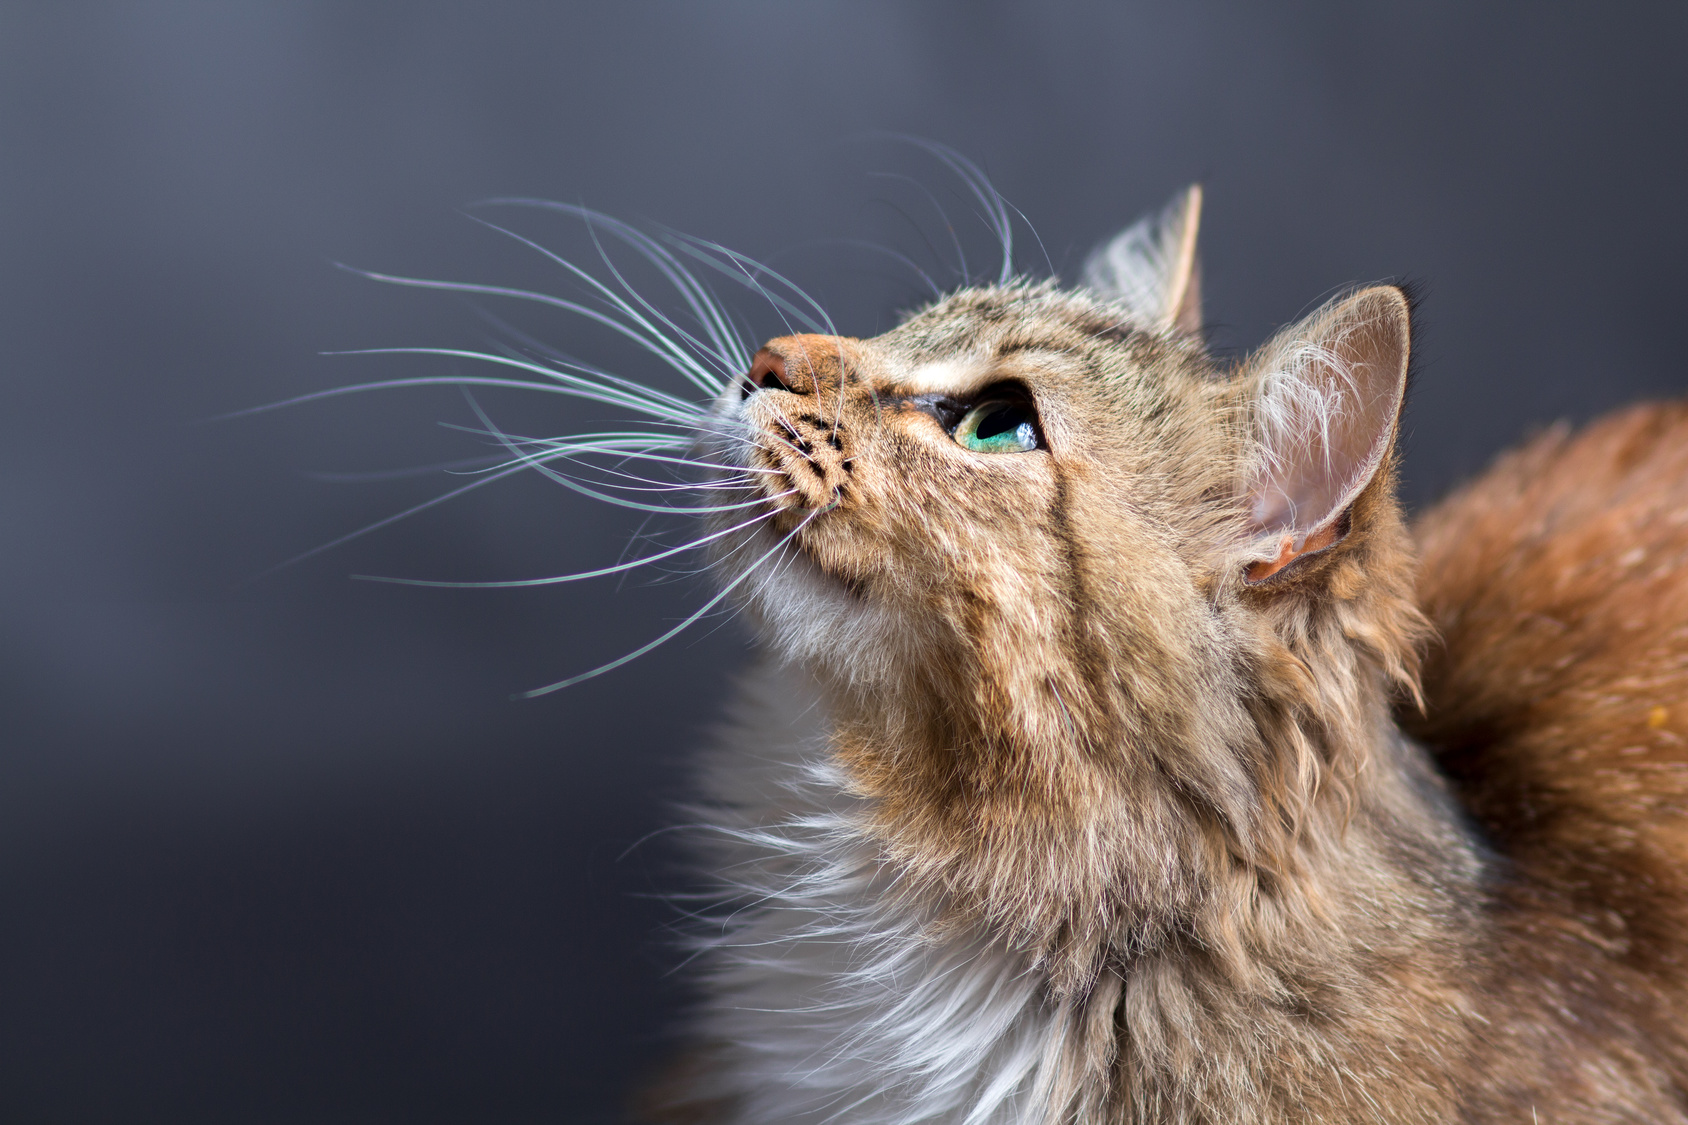 Cat behavioral issues can be frustrating but can be helped